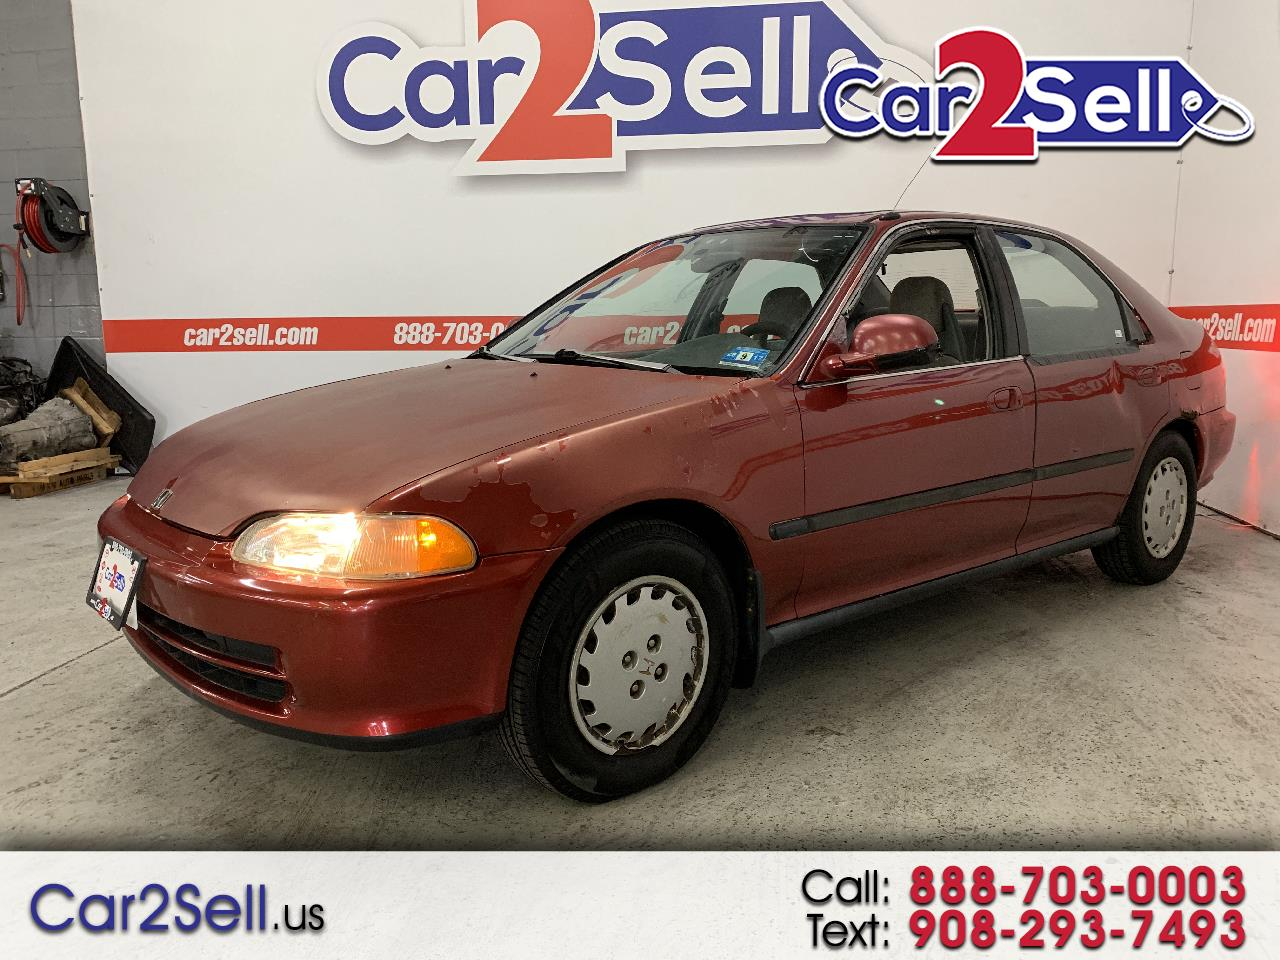 1993 Honda Civic 4dr Sedan 1.6L EX Auto